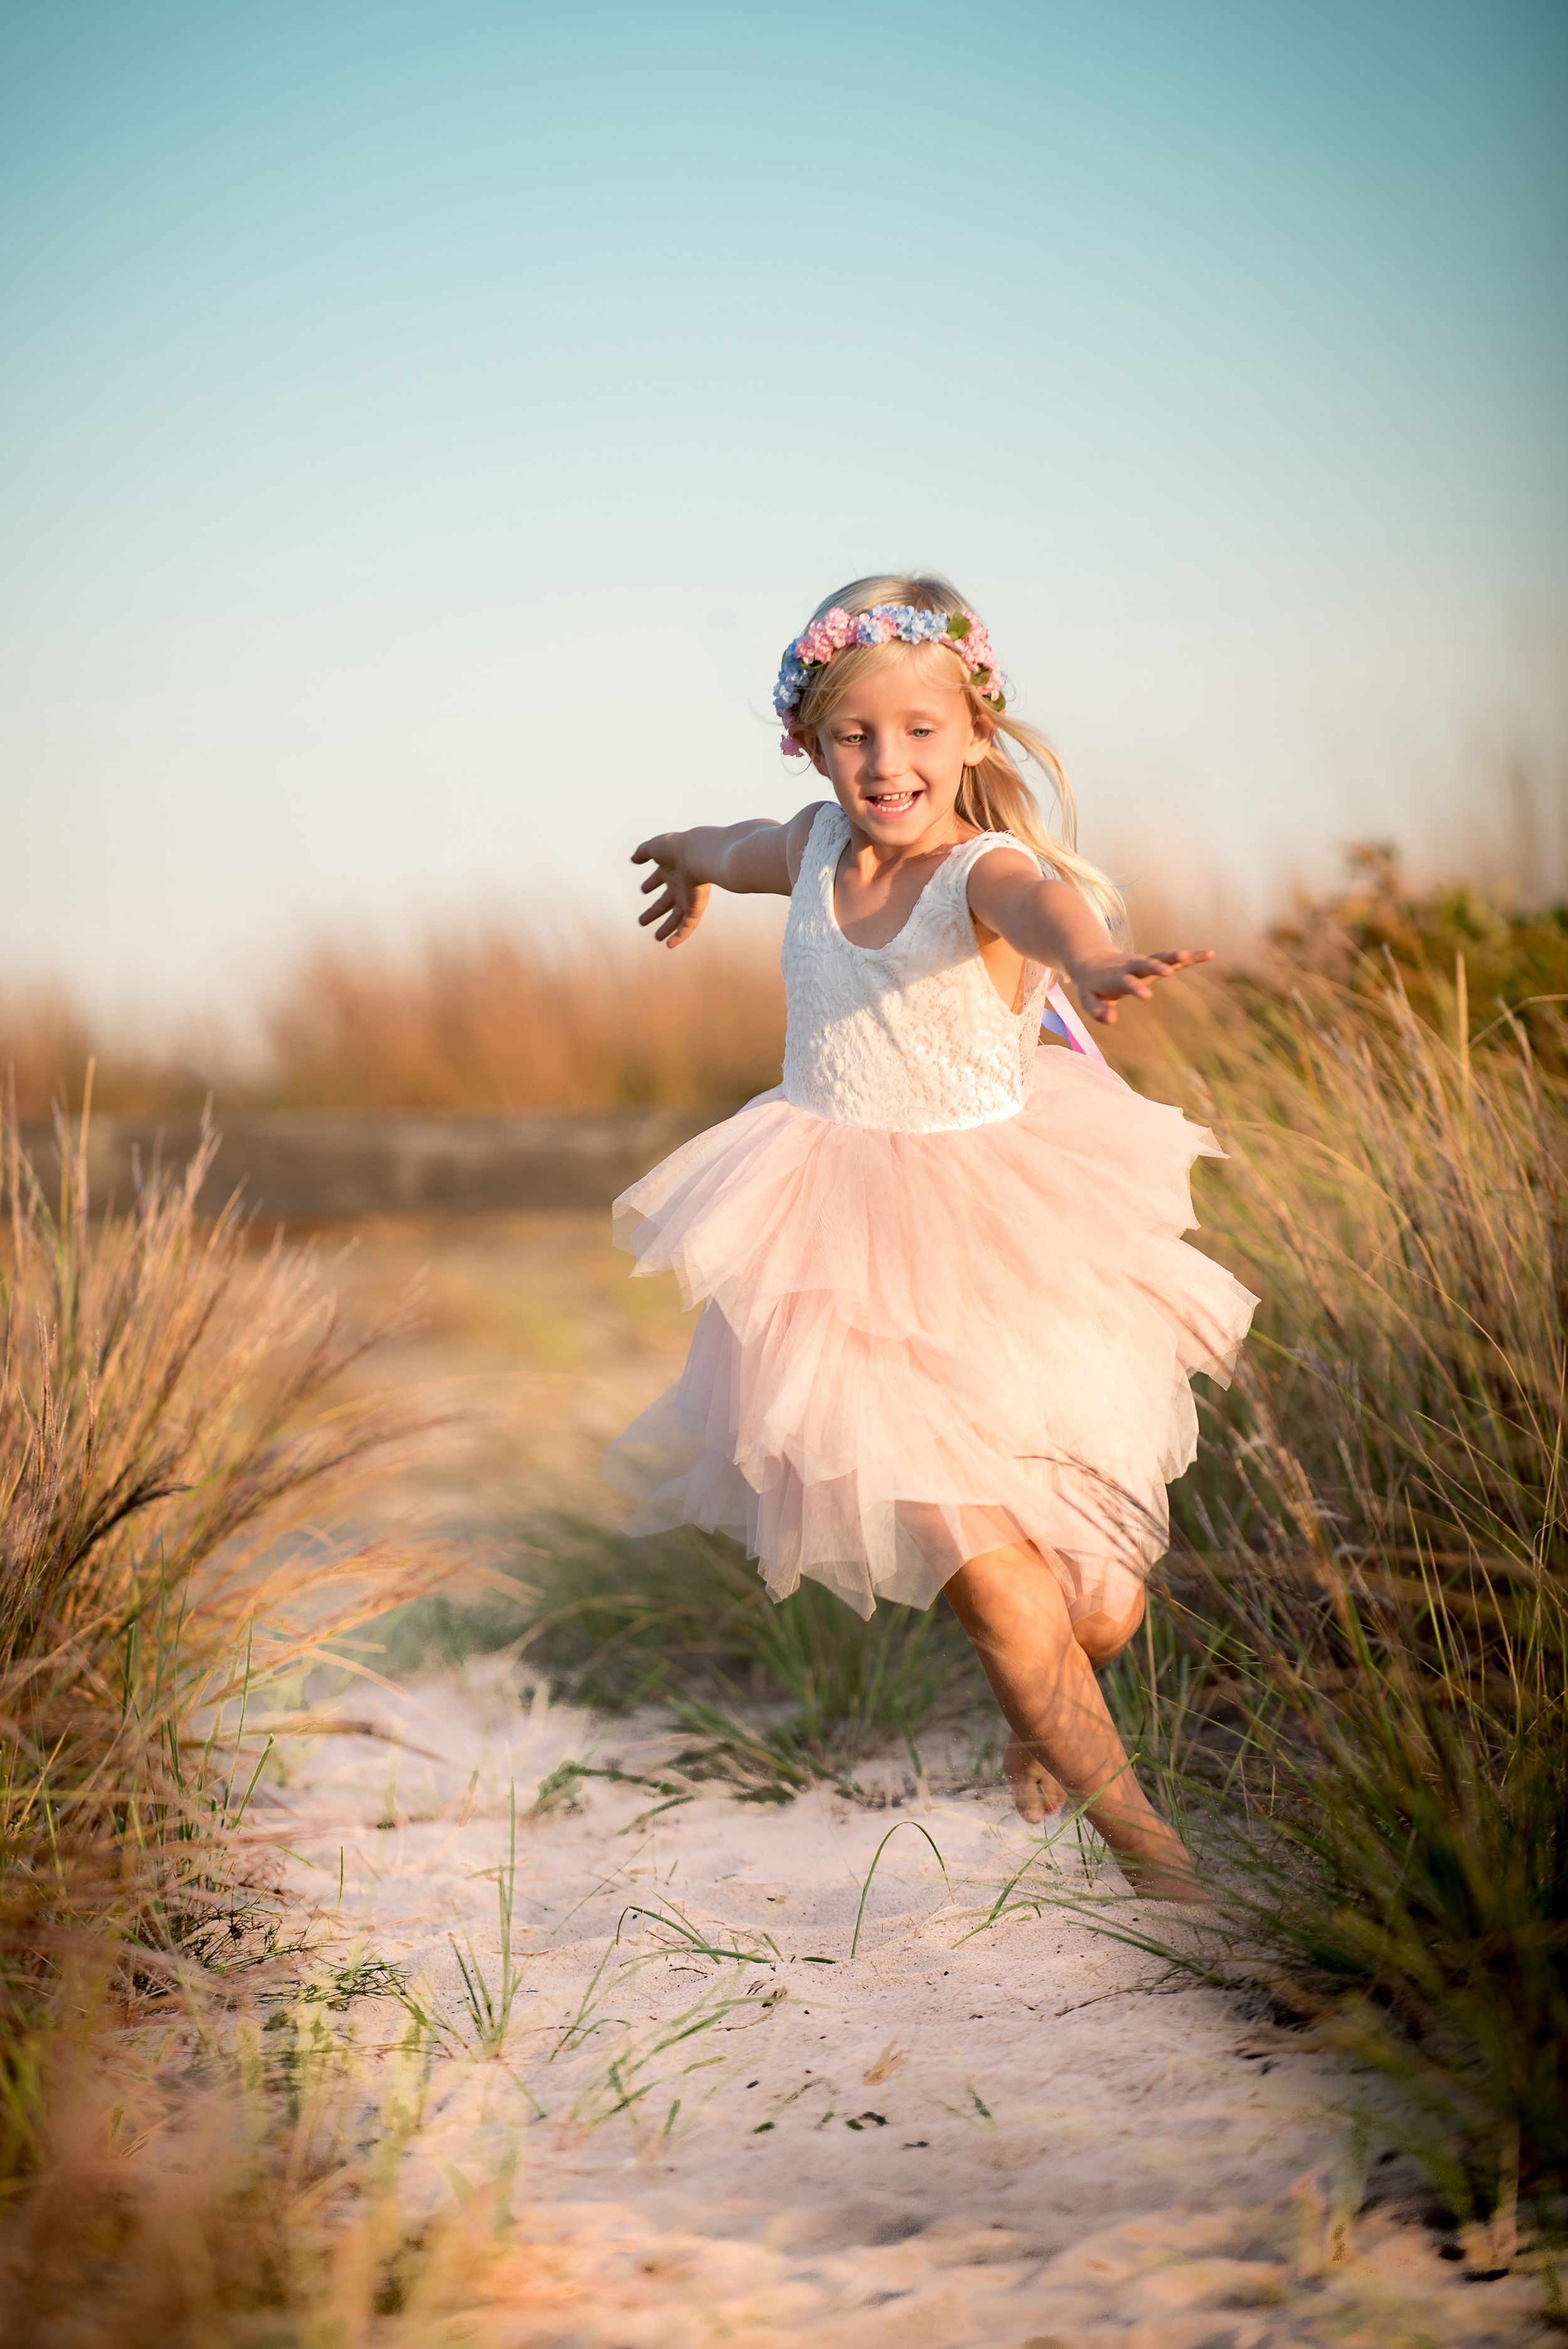 Plymouth MA beach portraits by heidi harting photography. Young girl running on the beach in a fairy costume